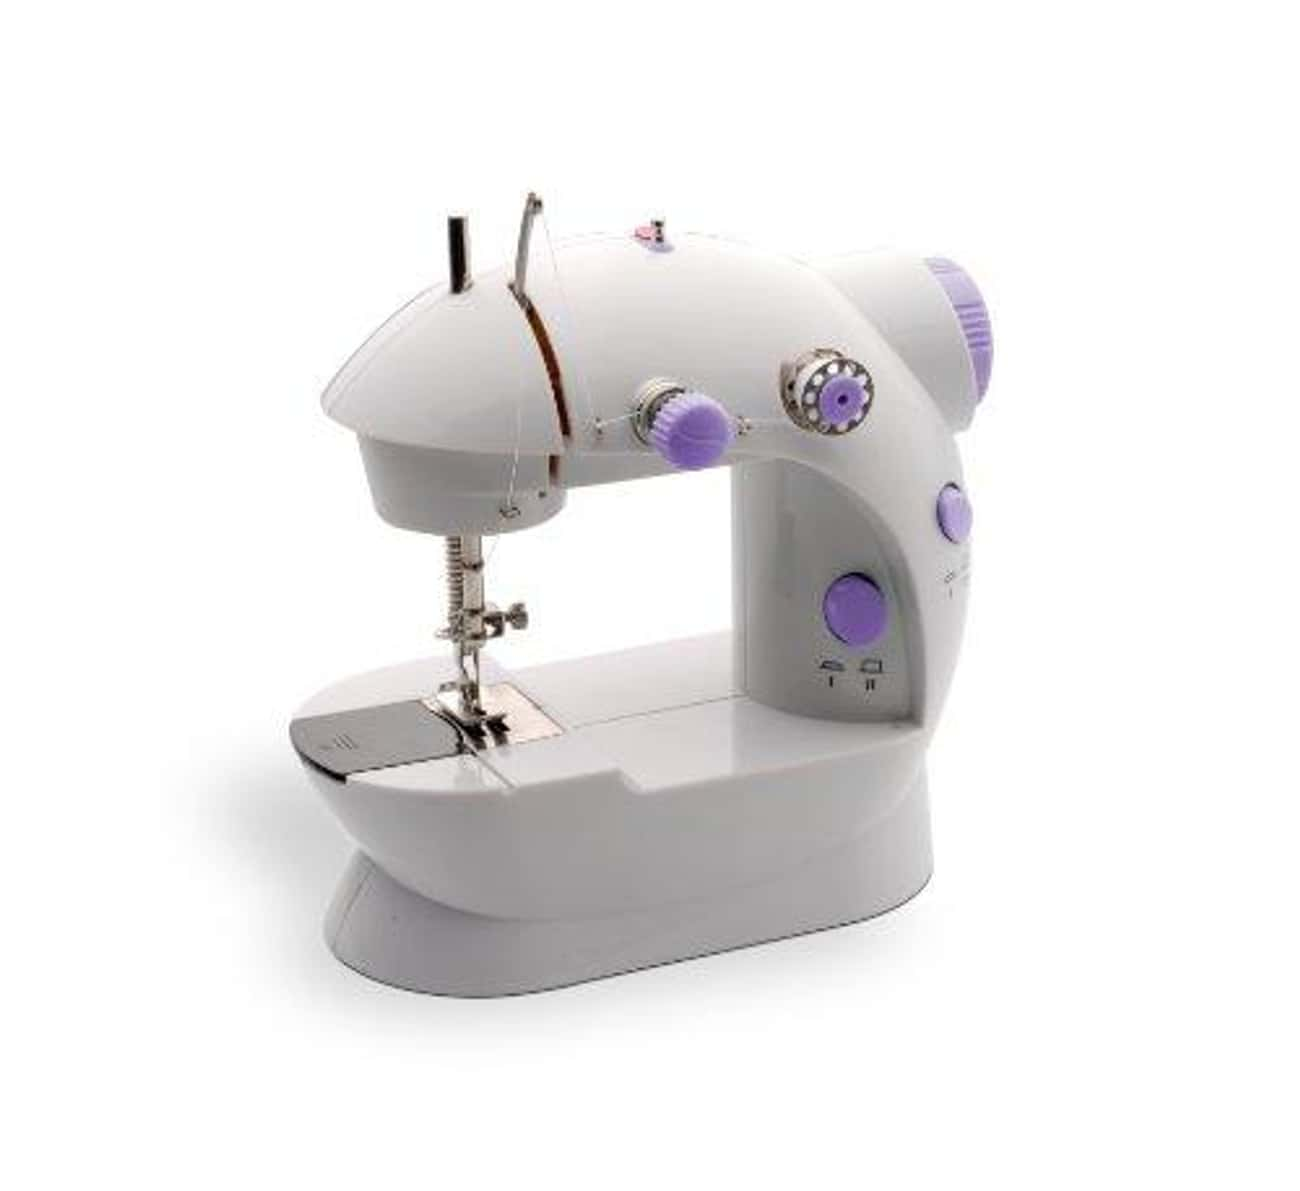 Michley Lss-202 Lil' Sew & Sew is listed (or ranked) 3 on the list The Best Hand Held Sewing Machine